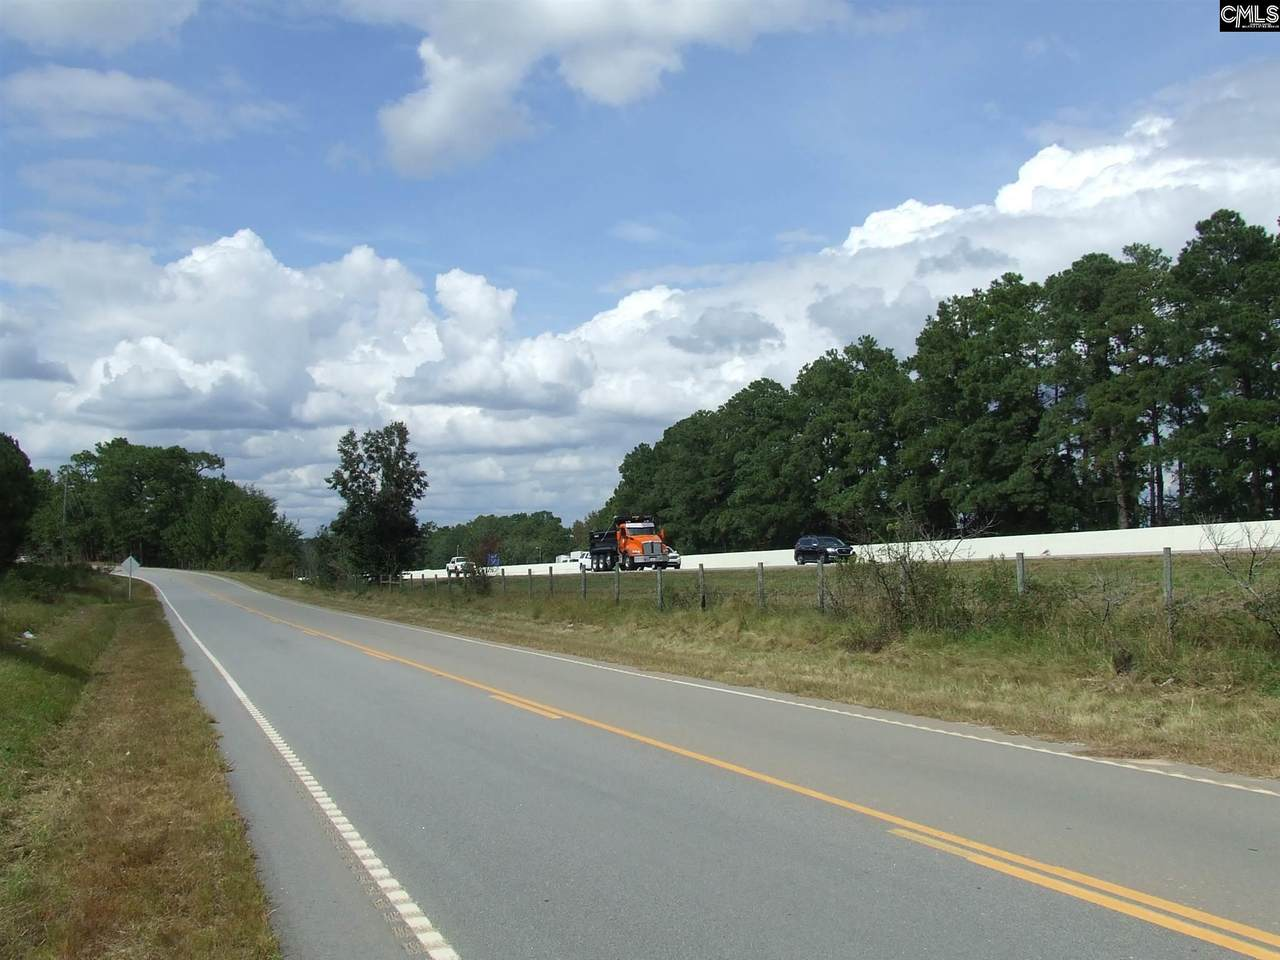 000 Frontage Road - Photo 1